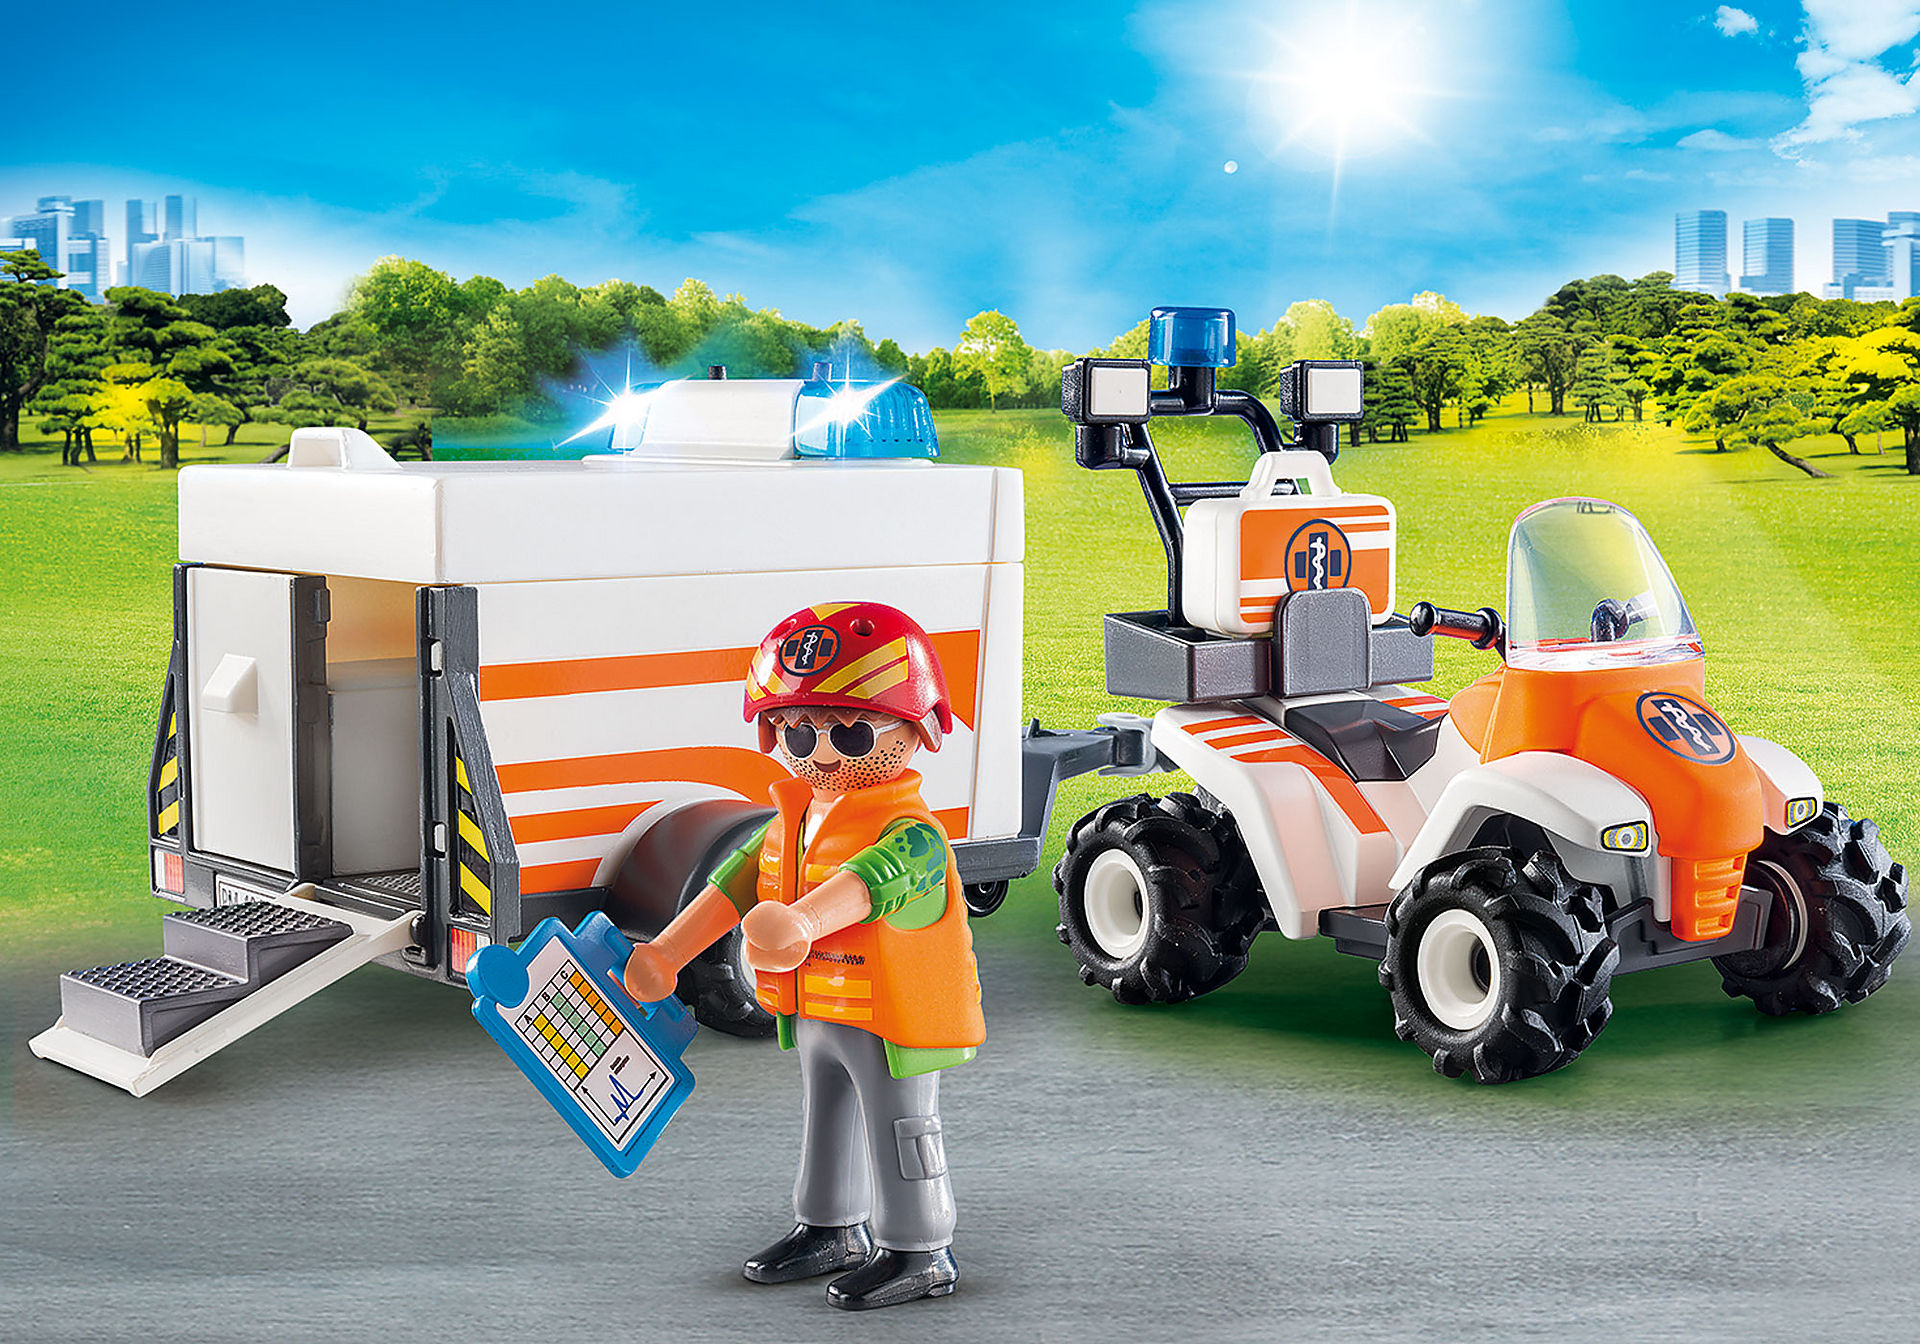 http://media.playmobil.com/i/playmobil/70053_product_detail/Quad soccorso con carrello